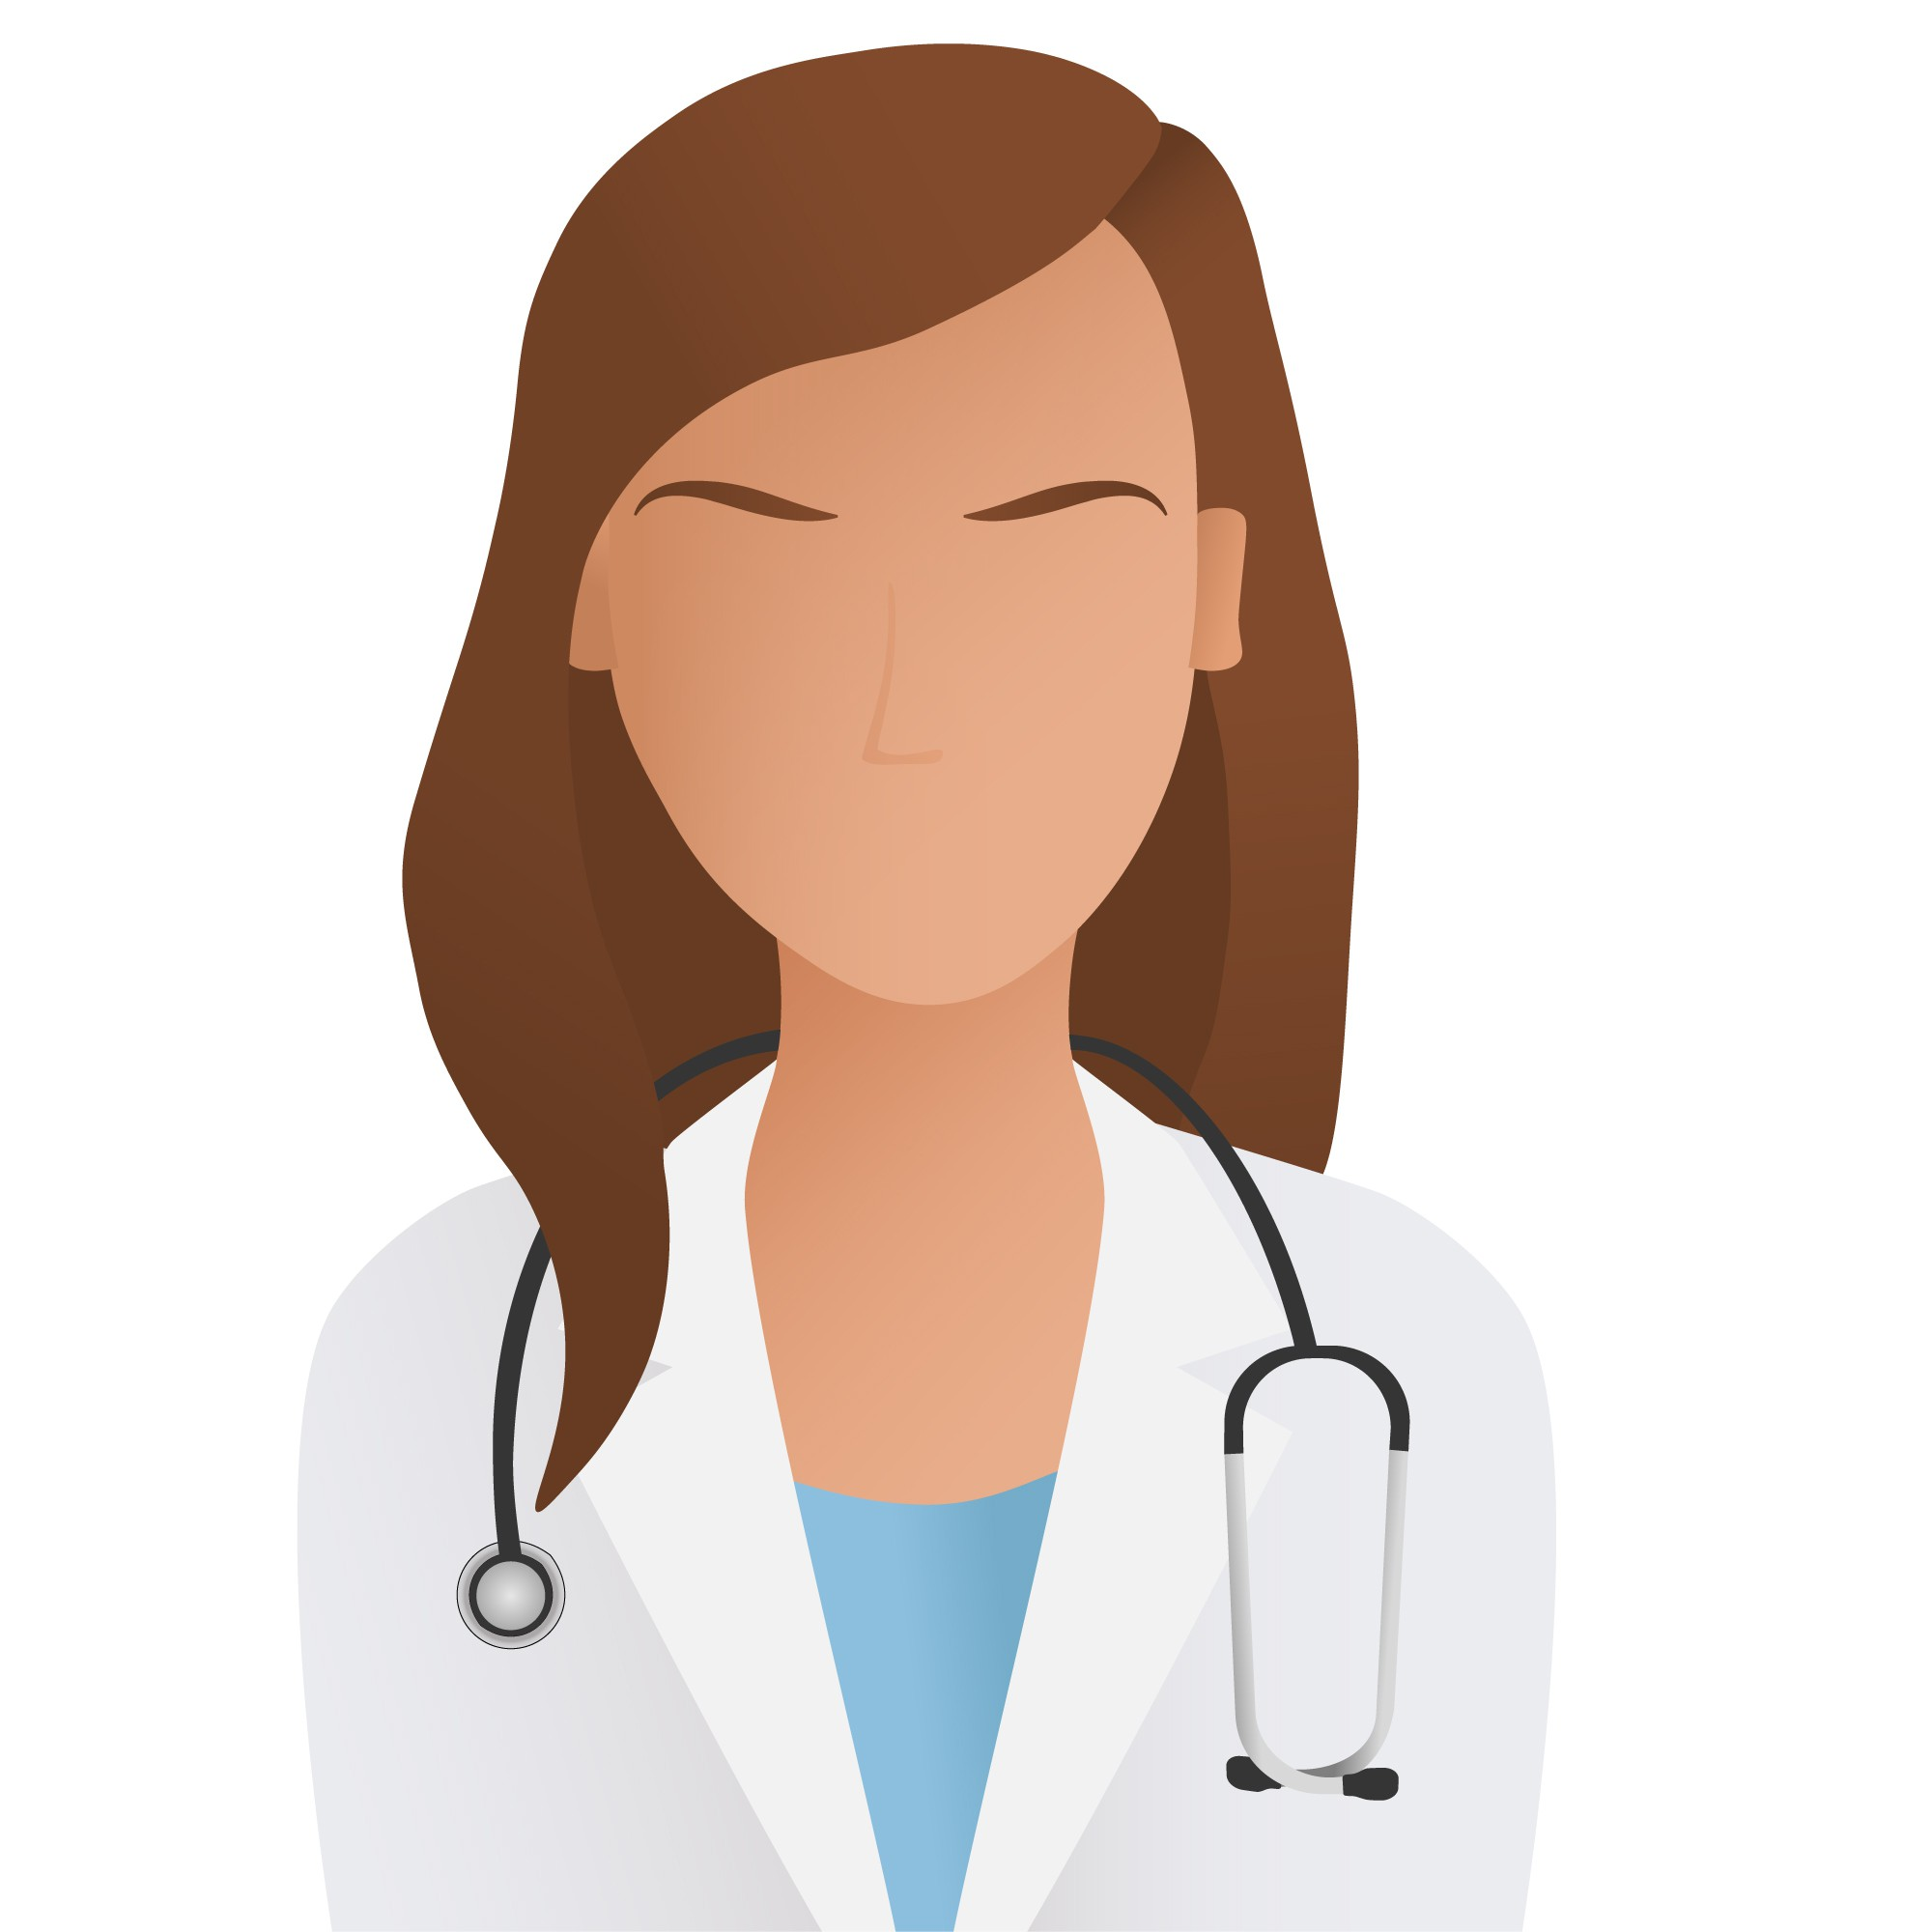 Design two simplistic MALE and FEMALE physician icons